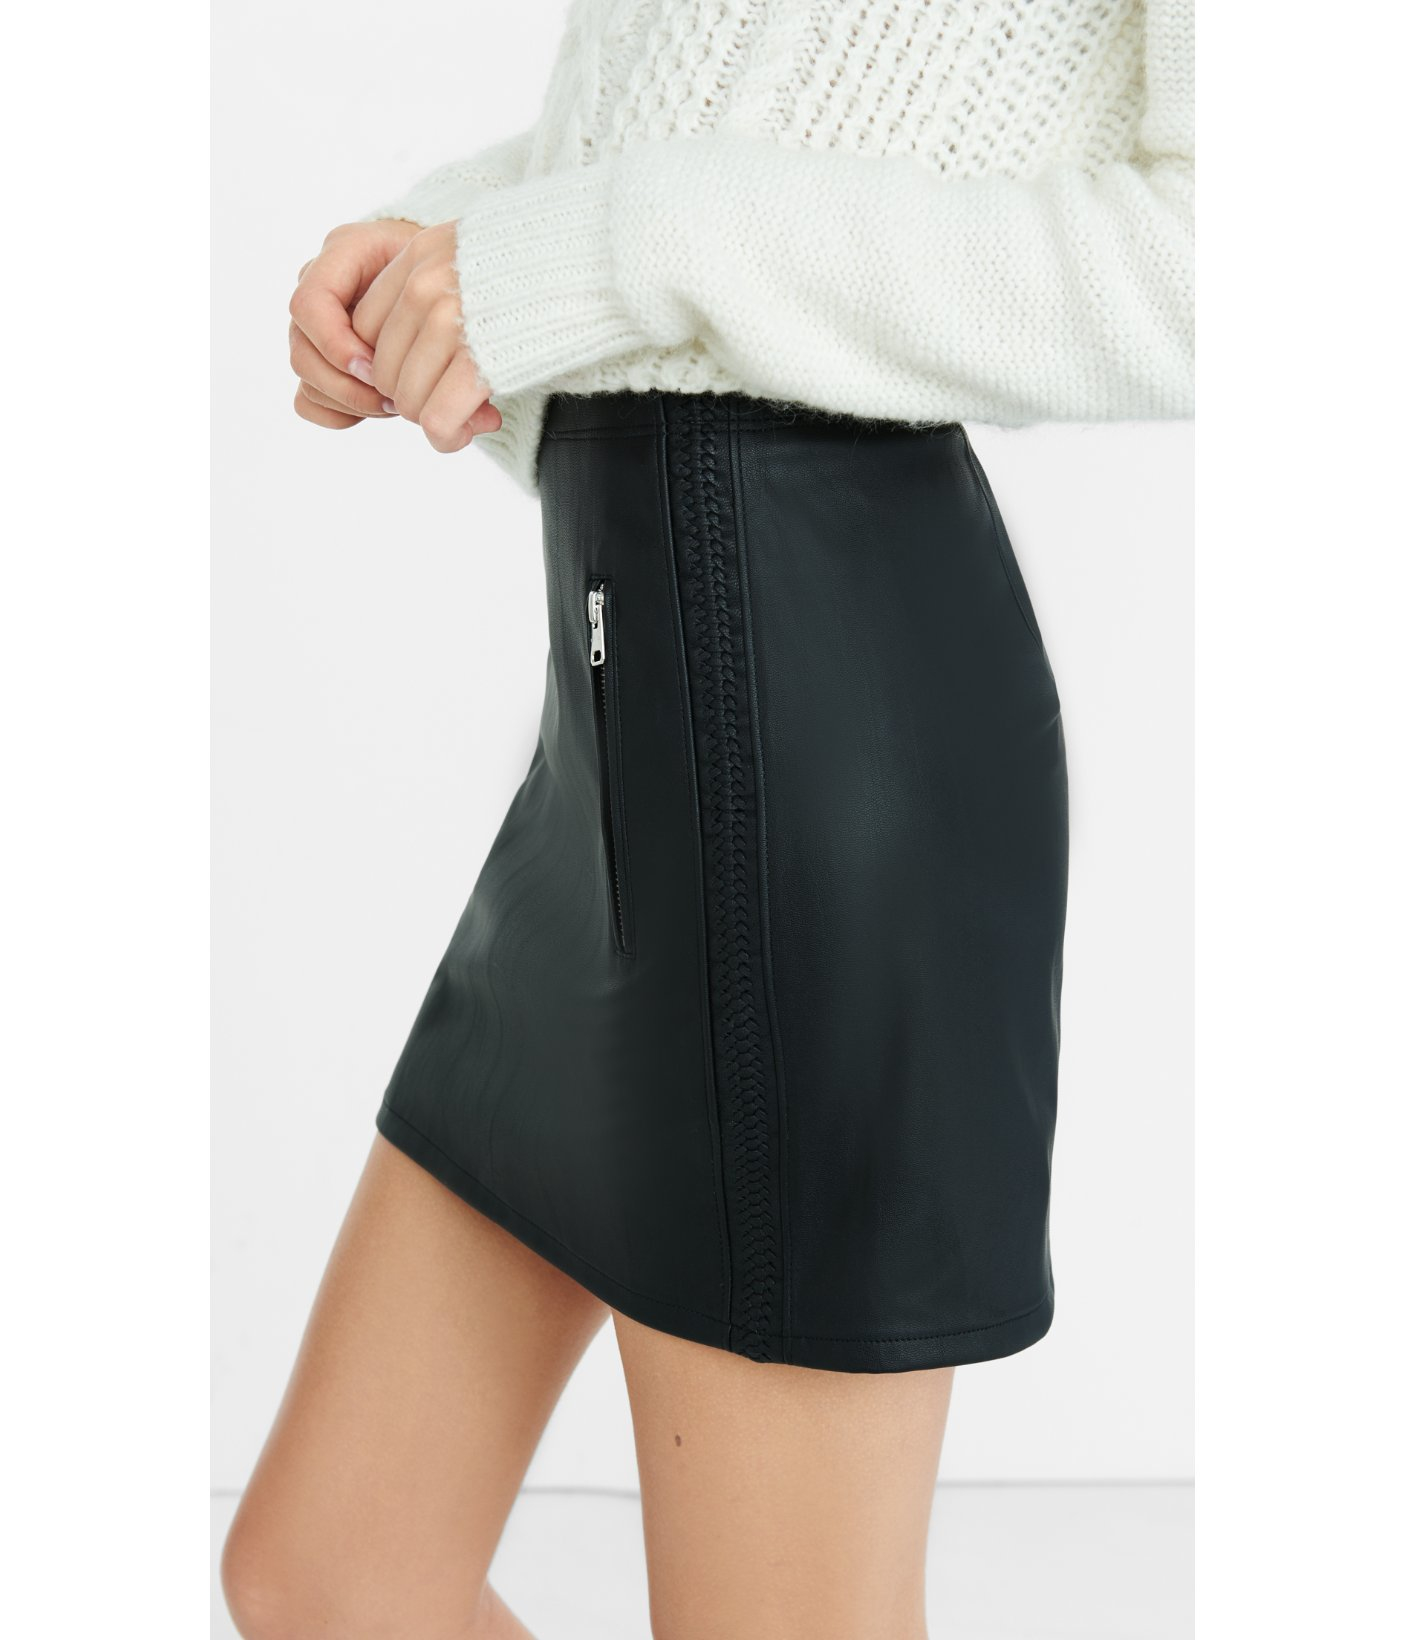 Express High Waisted (minus The) Leather Mini Skirt in Black | Lyst